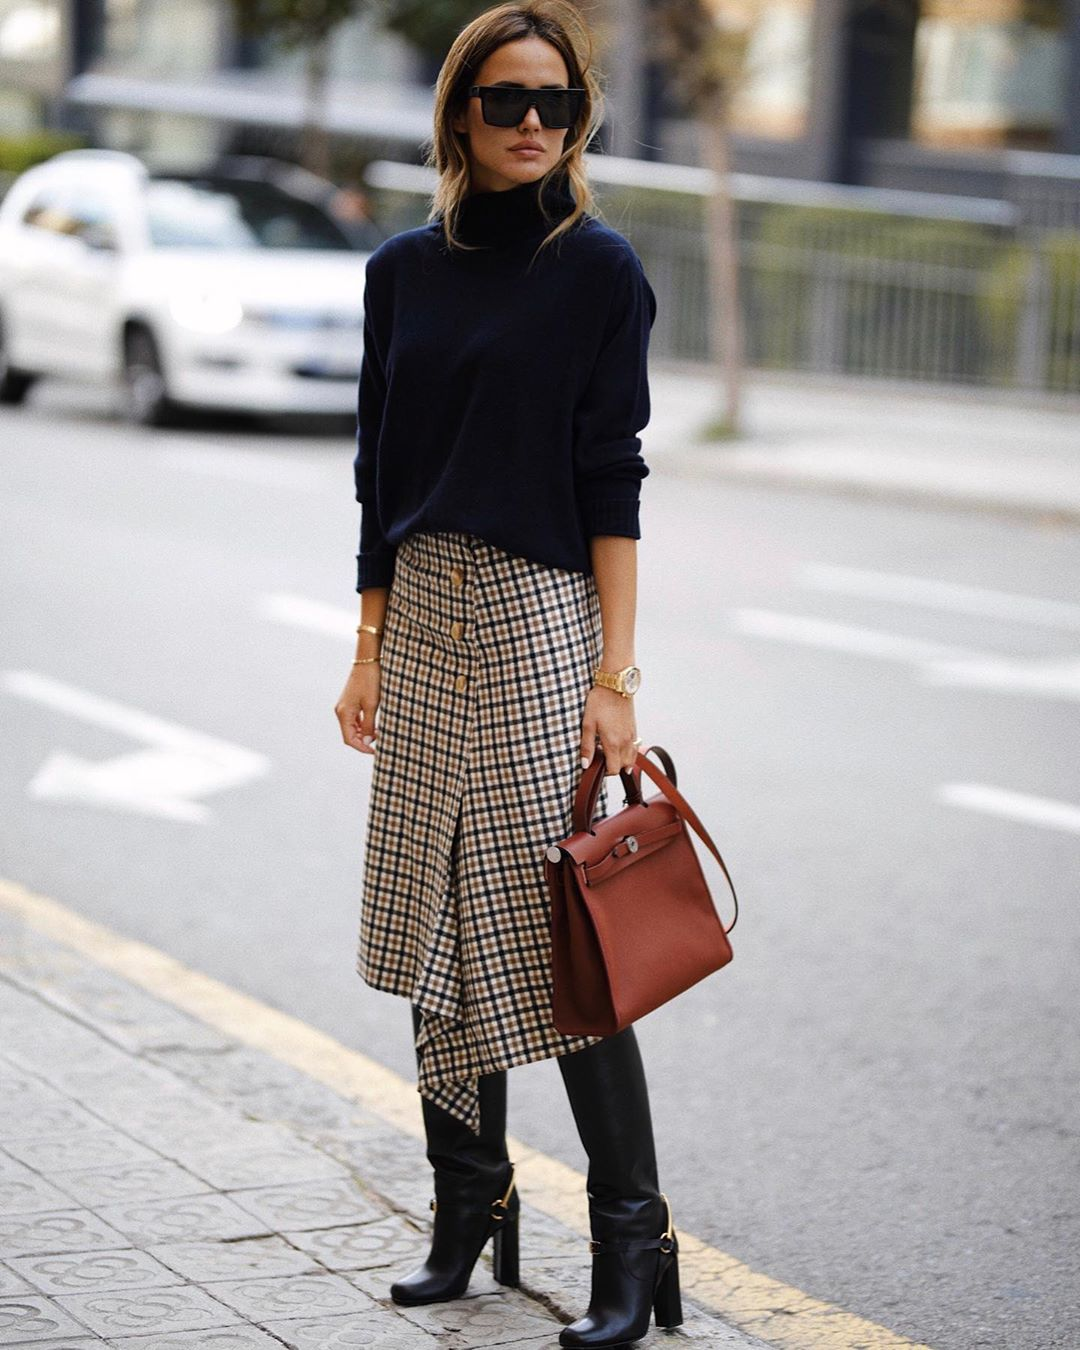 A Stylish Work-Ready Way to Wear a Plaid Midi Skirt — @ariviere in a Turtleneck Sweater, Hermes Bag, and Knee-High Boots